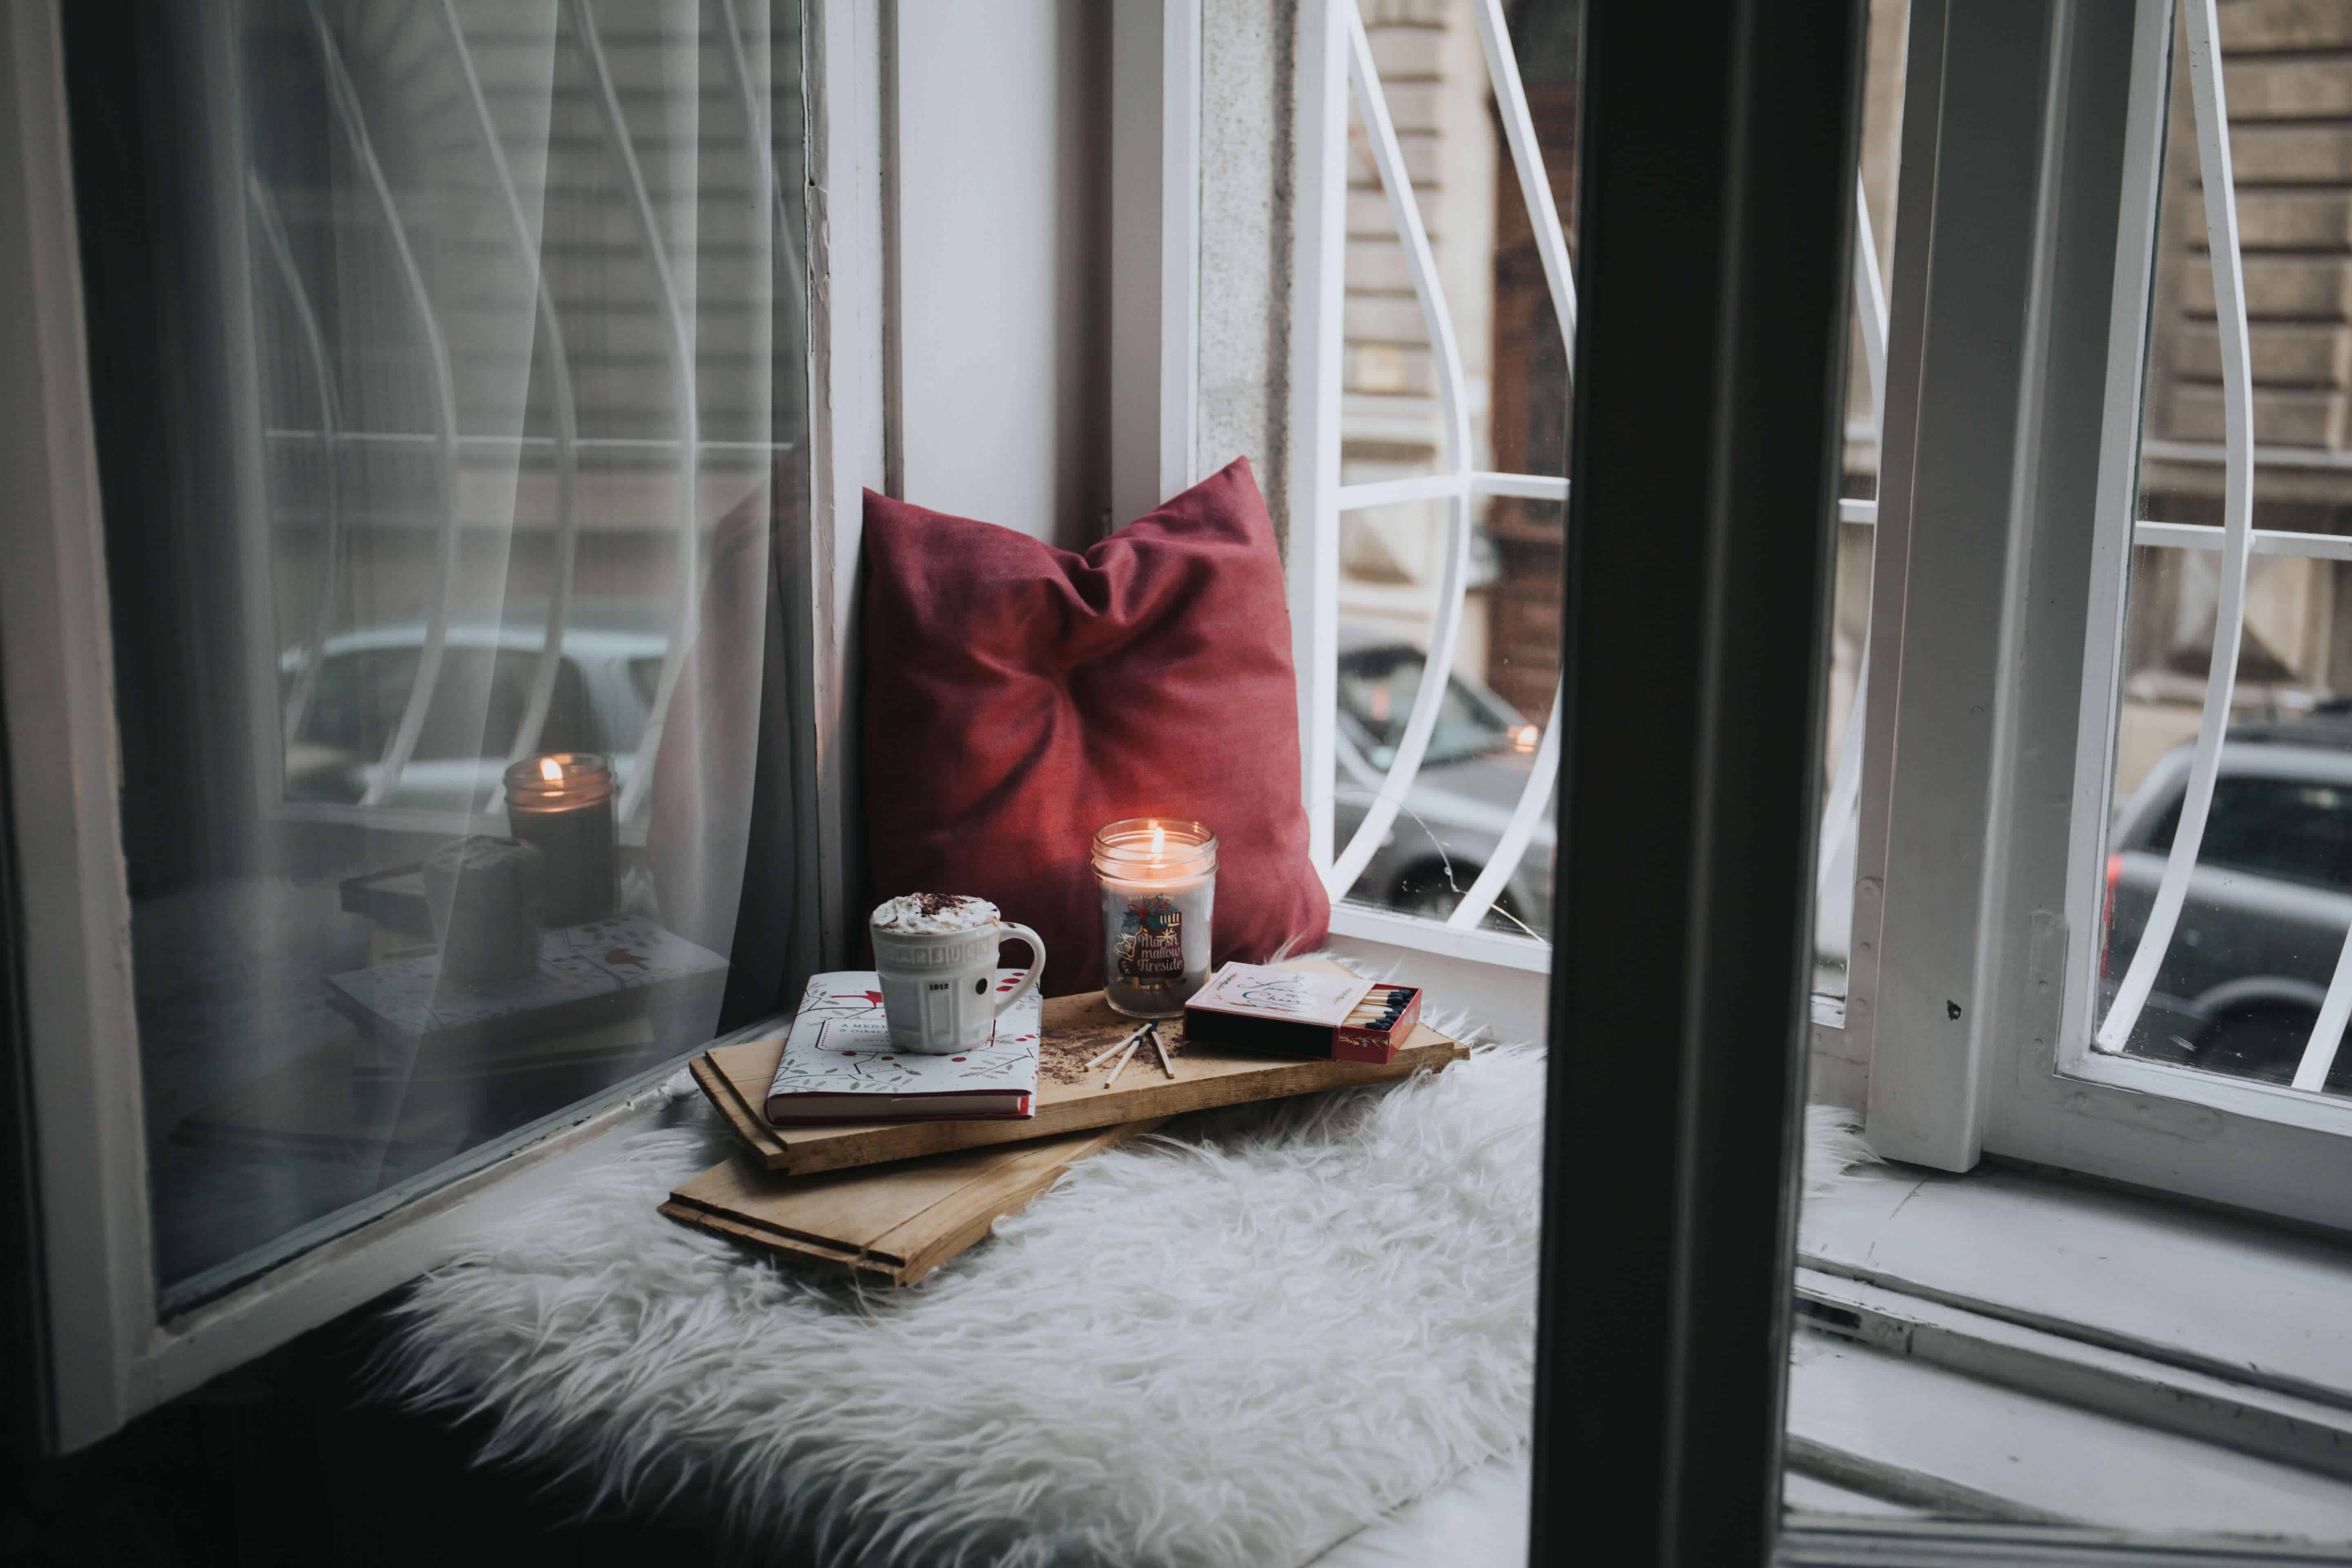 A hygge spot by the window with candles, tea and pillows.